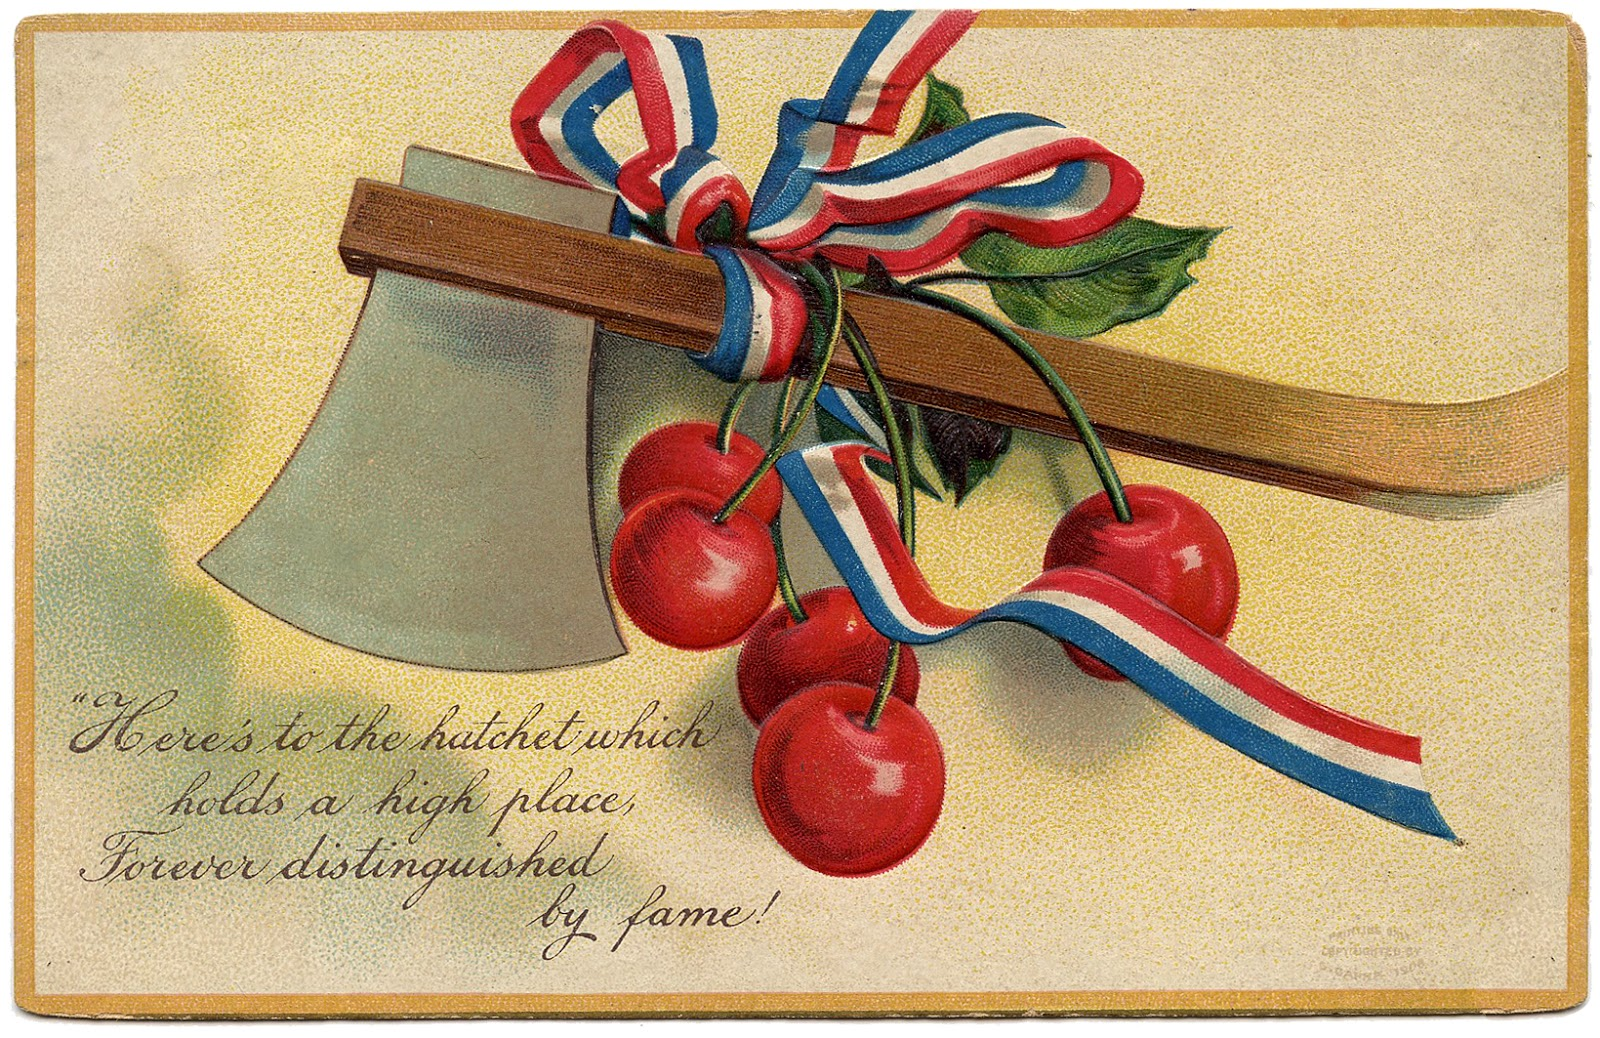 A Presidential greeting card, featuring cherries.